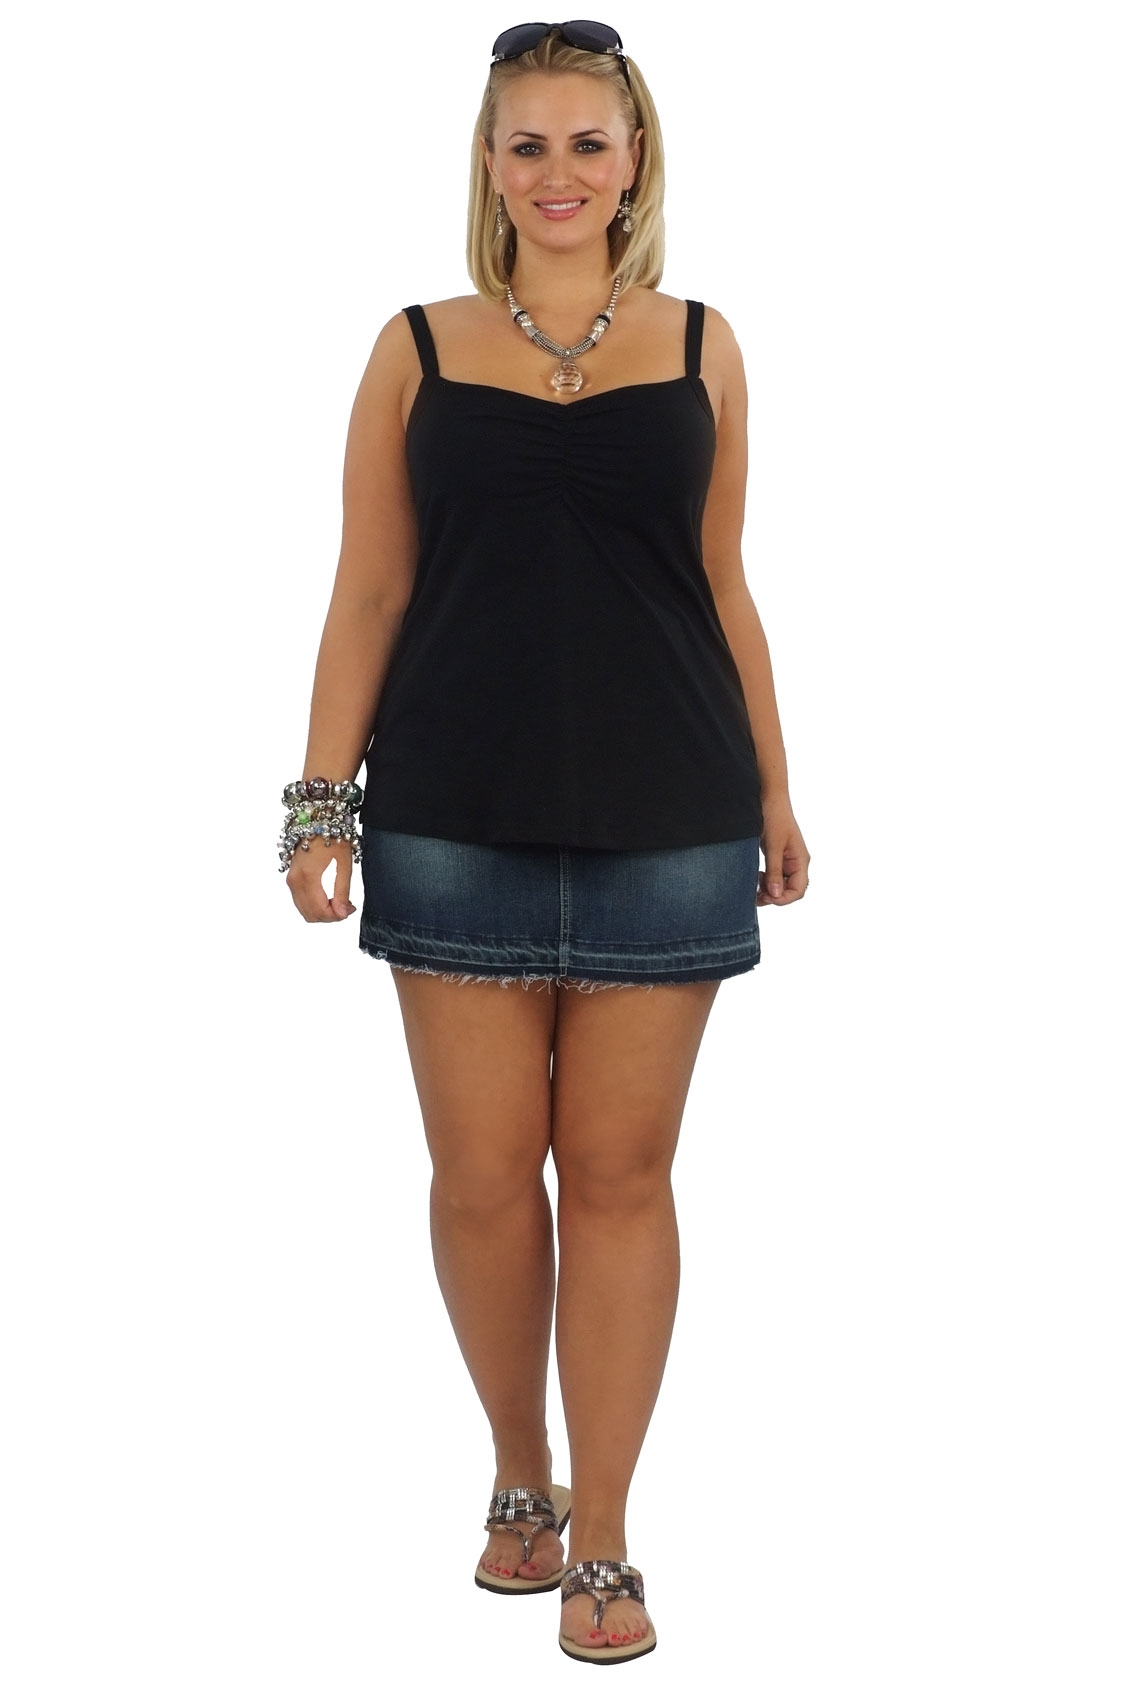 Plus Size Mini Skirts Review Shopping Guide We Are